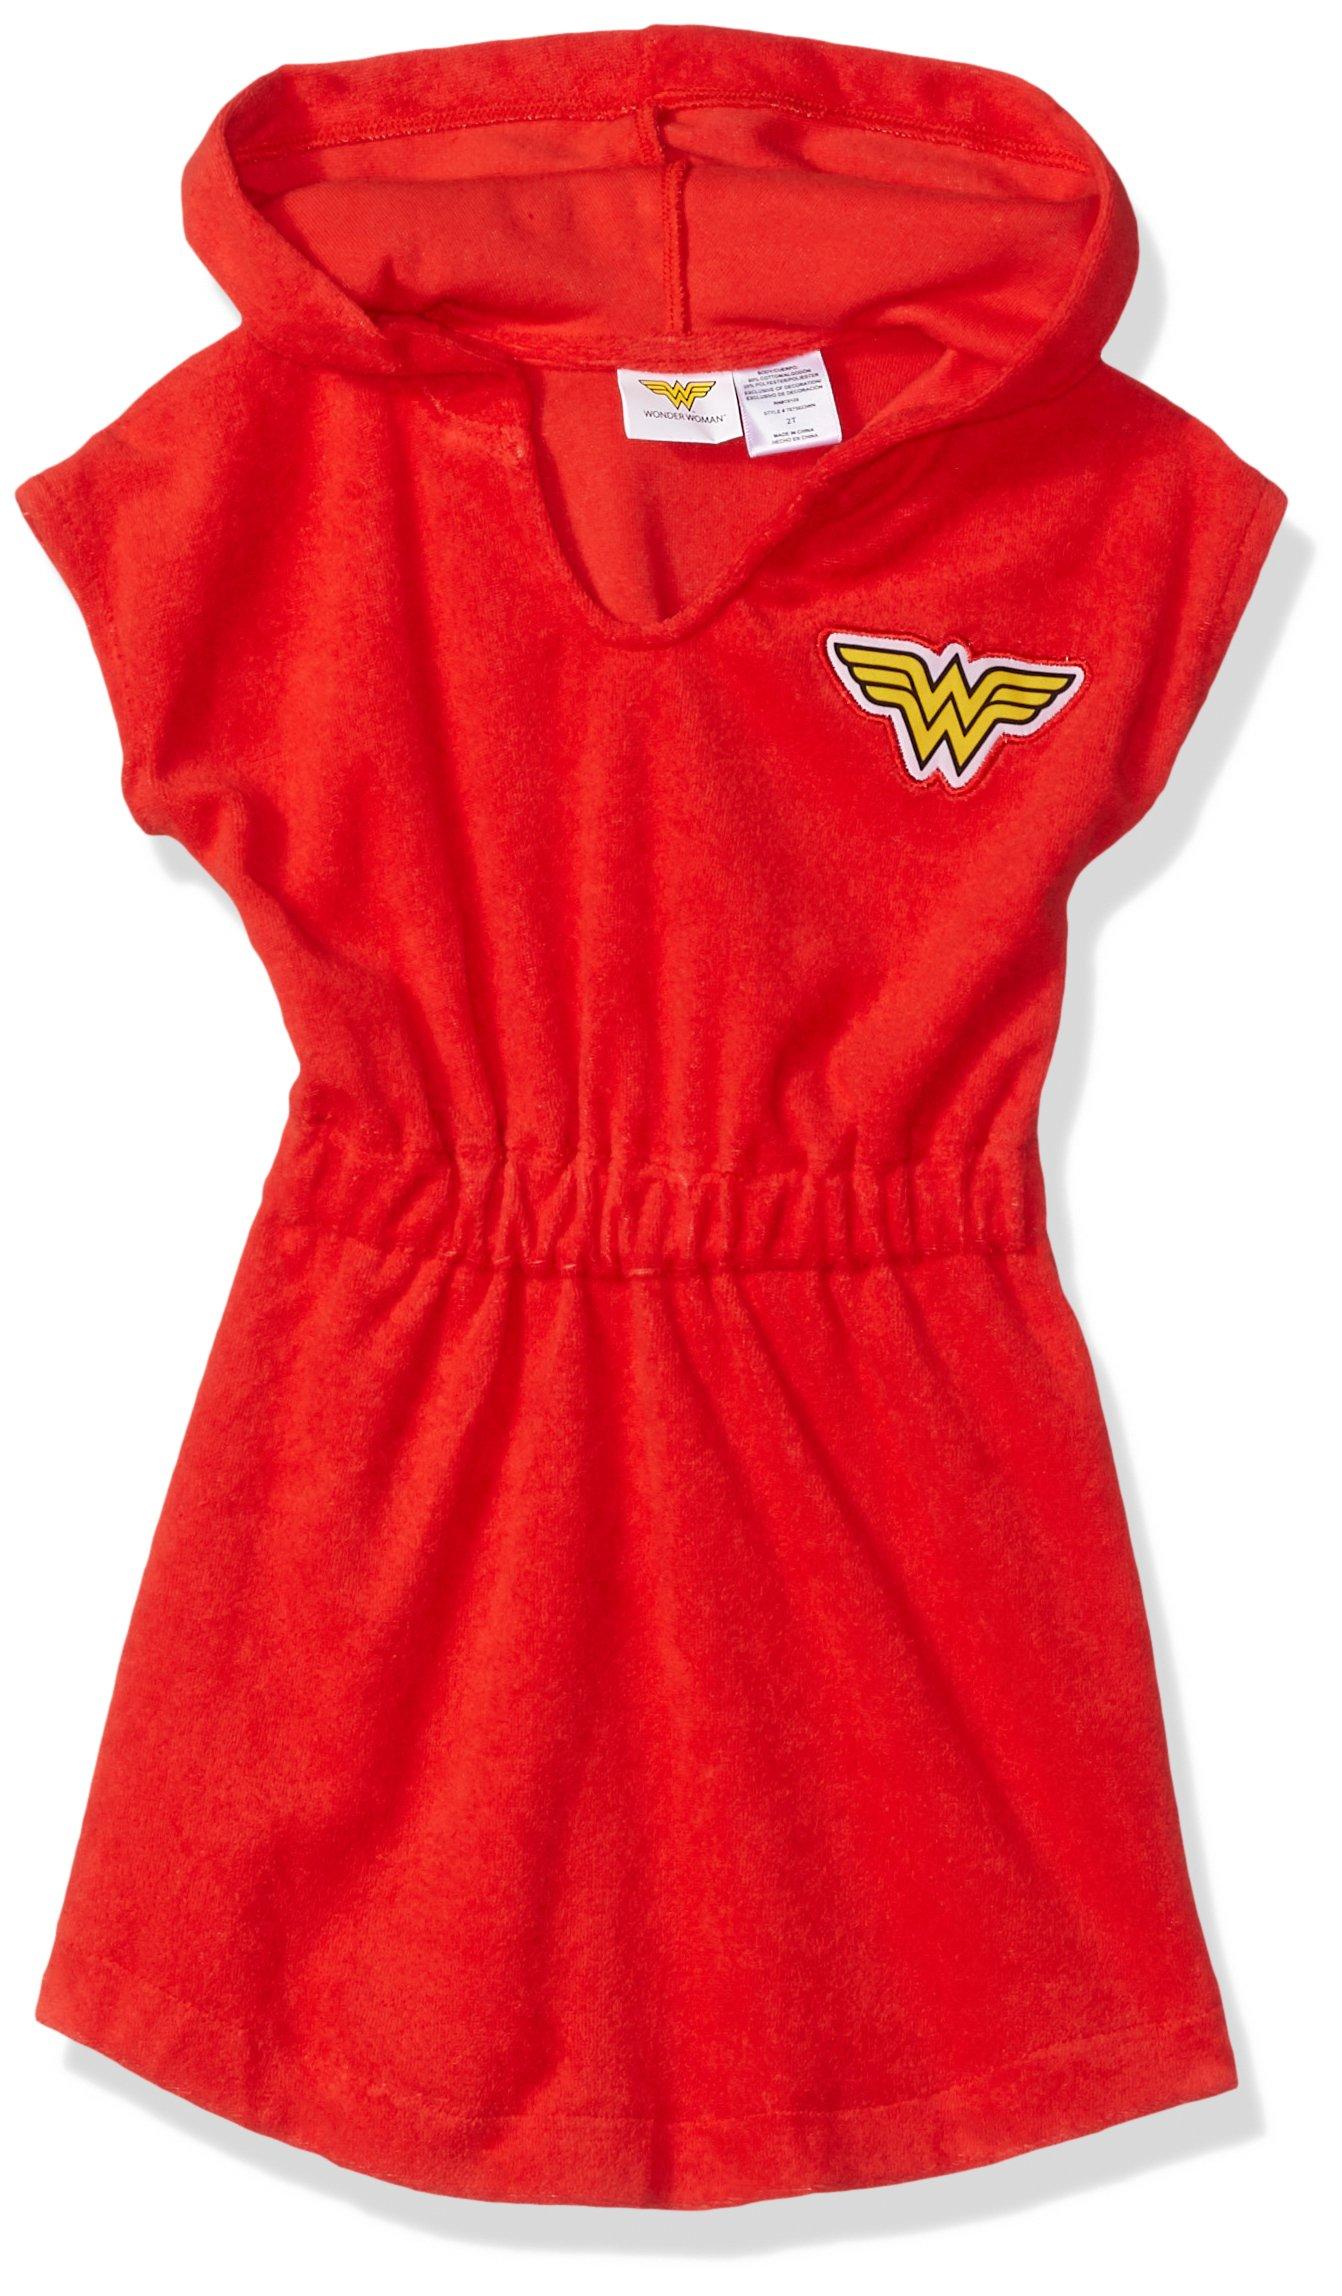 Dreamwave Toddler Girls' Wonder Woman Hooded Cover up, Candy, 3T